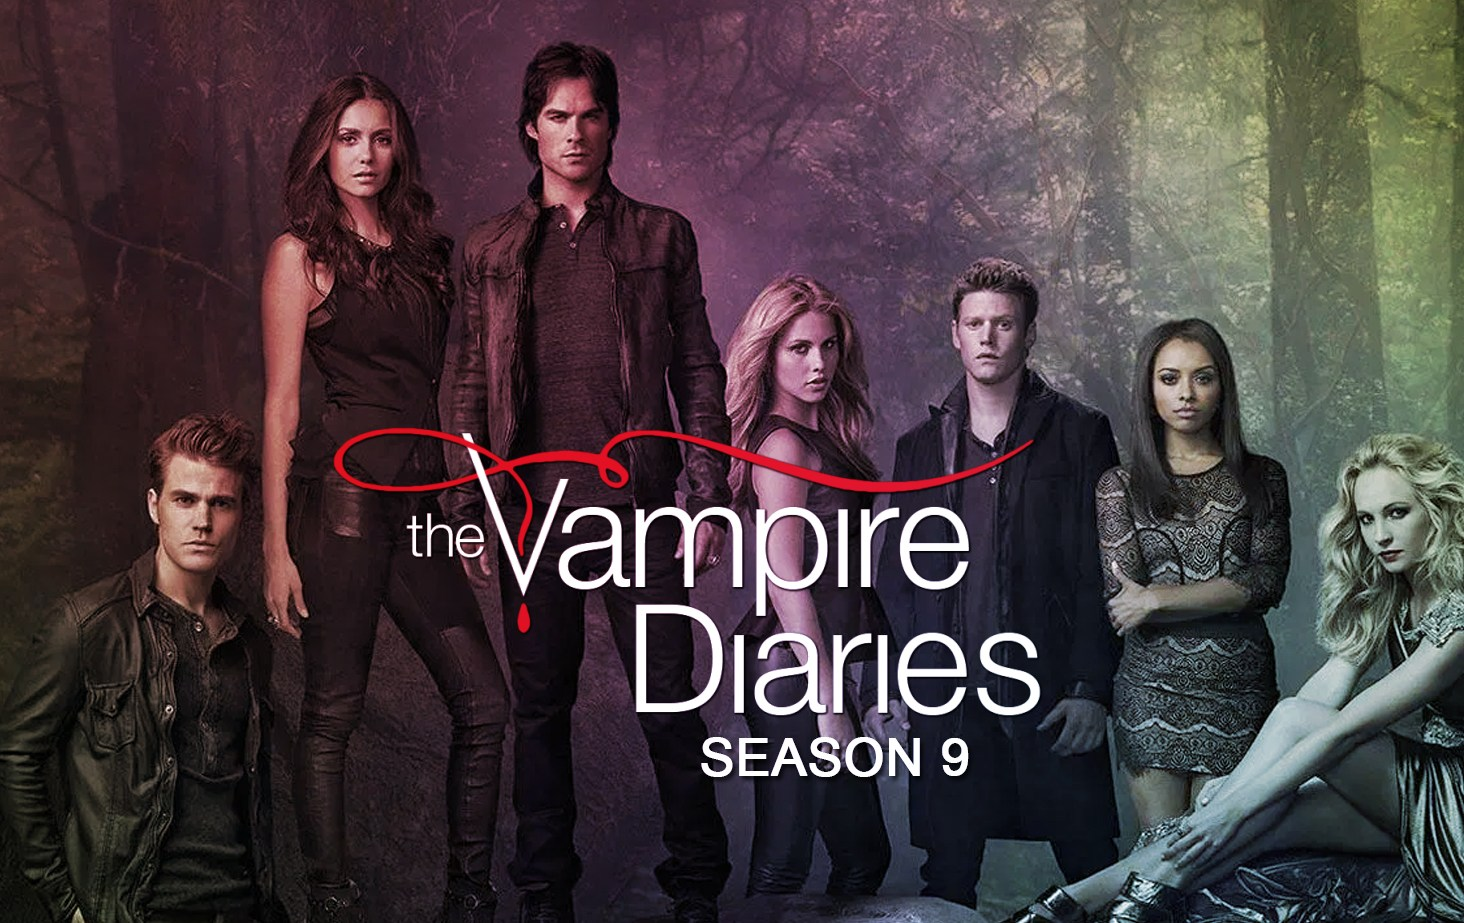 Vampire Diaries have renewed the show for its 9th season to be premiered in  2021 – viralcocaine.com